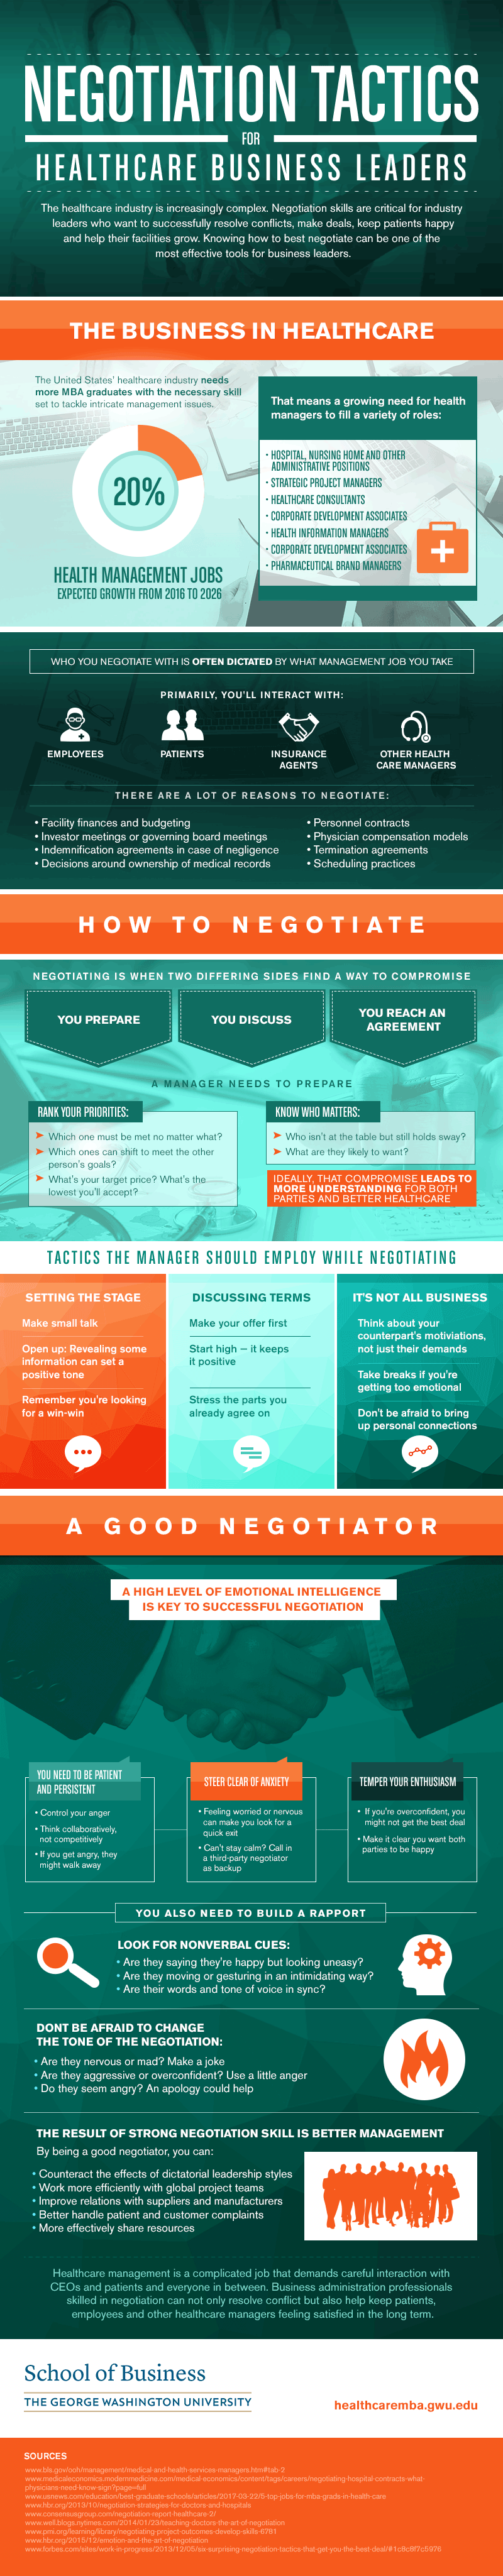 Negotiation Tactics for Healthcare Business Leaders